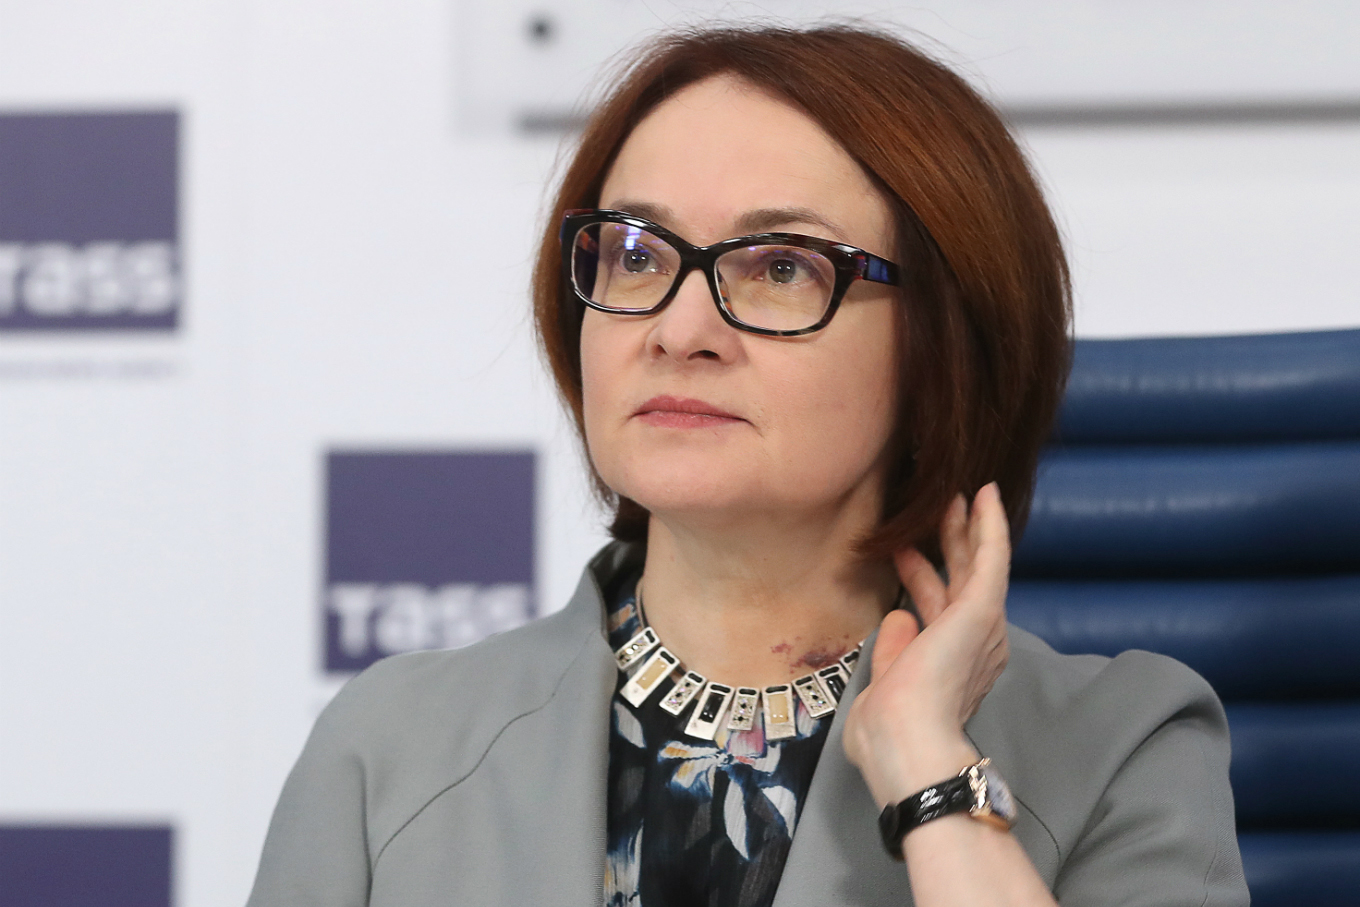 What does Elvira Nabiullina create speed for, is, a magazine, just, maybe, an author, a person, opinions, Telegram, clearly, justify, actions, lady, leader, Russia, Now, insights, get tired